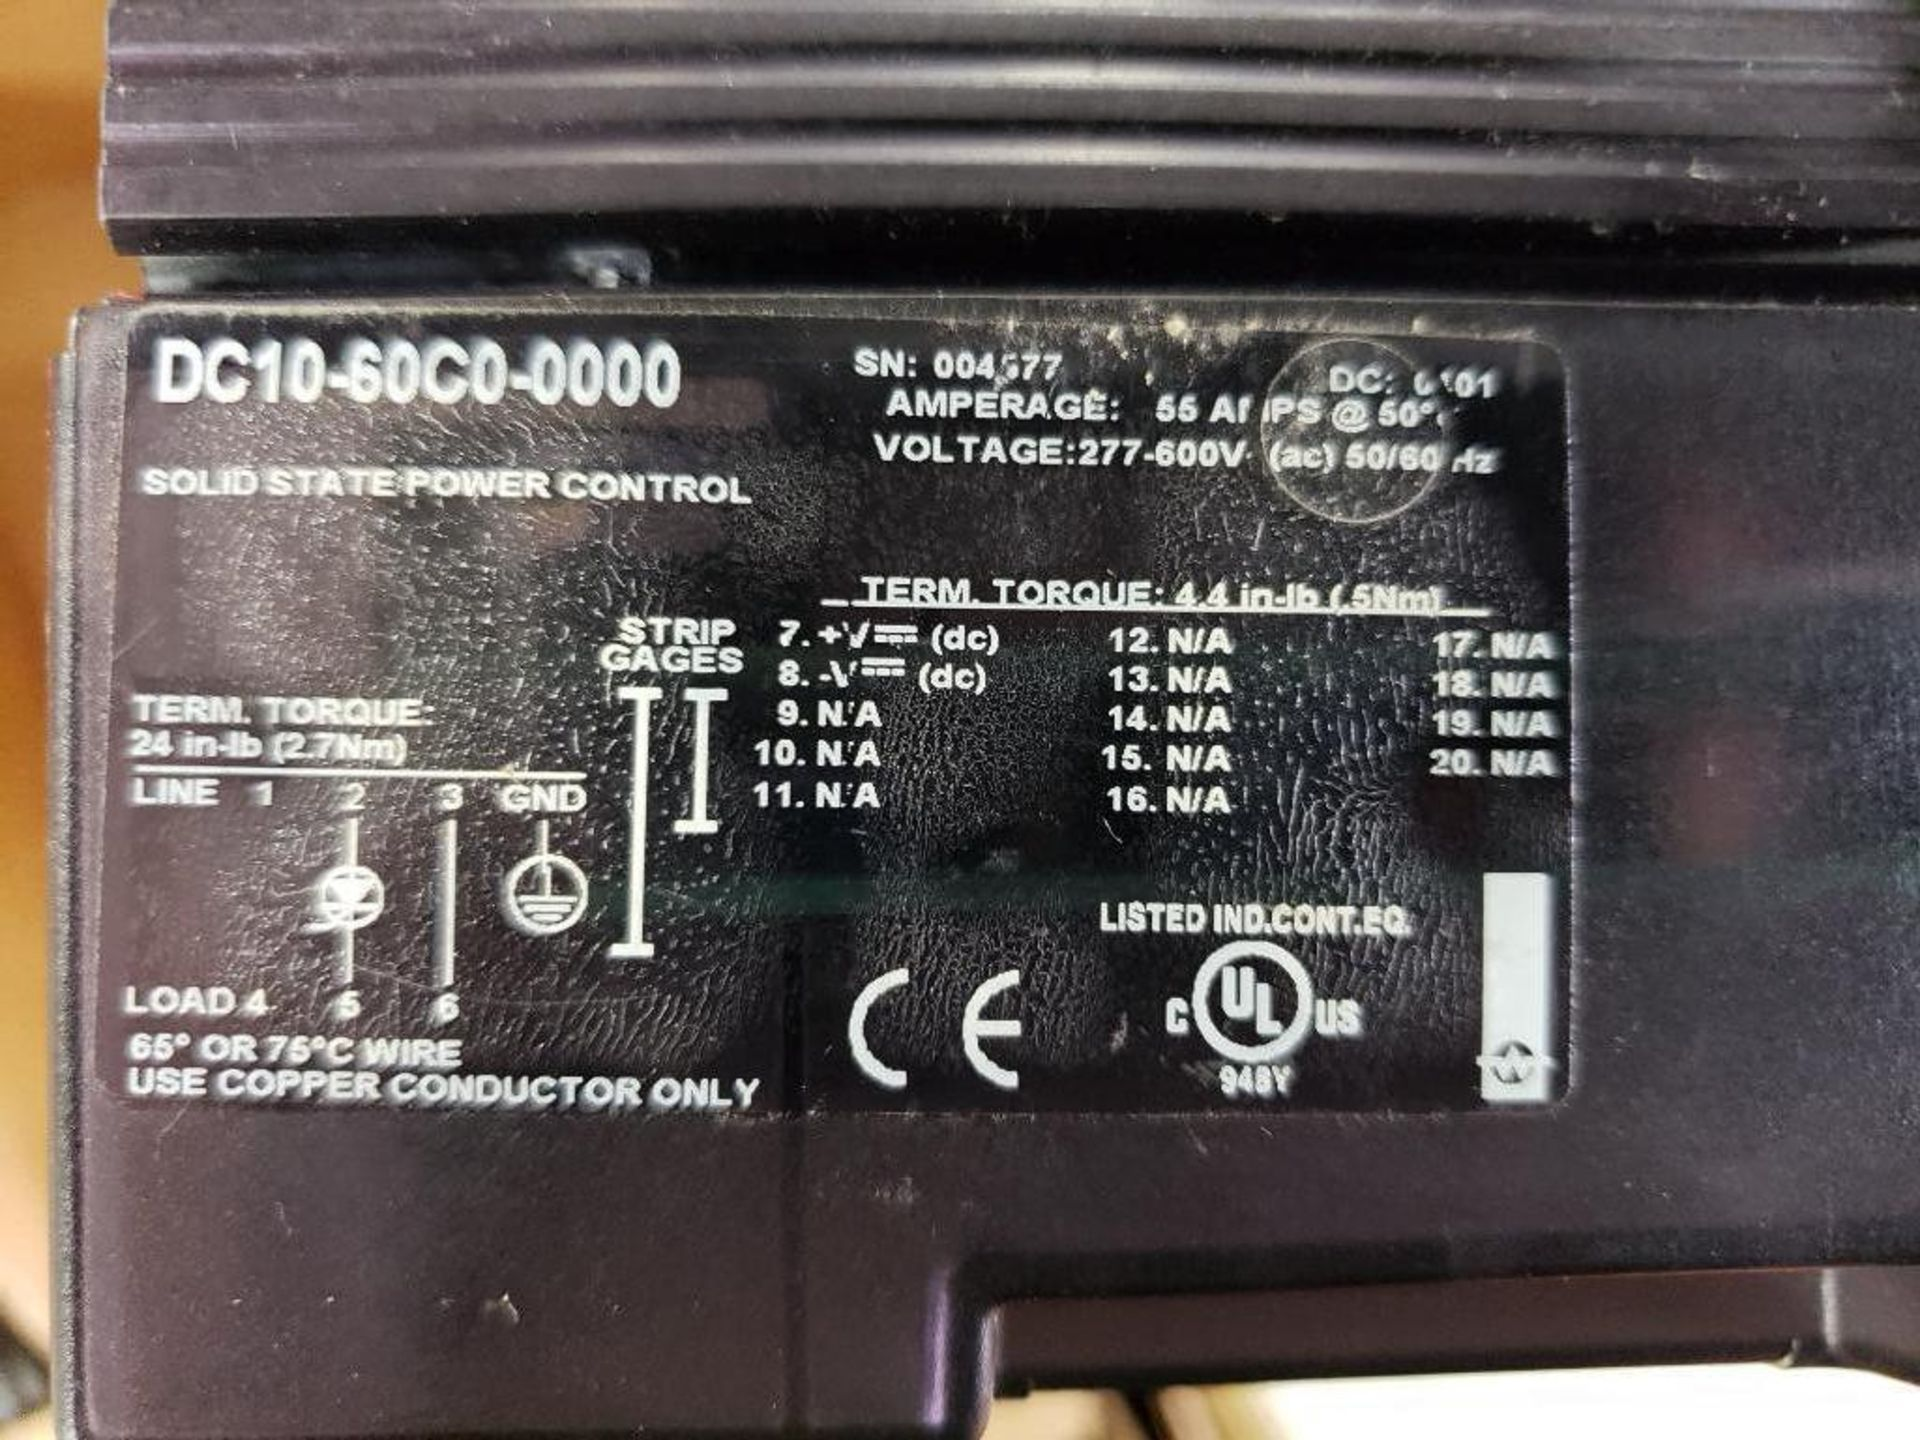 Qty 2 - Watlow DIN-A-Mite DC10-60C0-0000 power controller. - Image 5 of 5